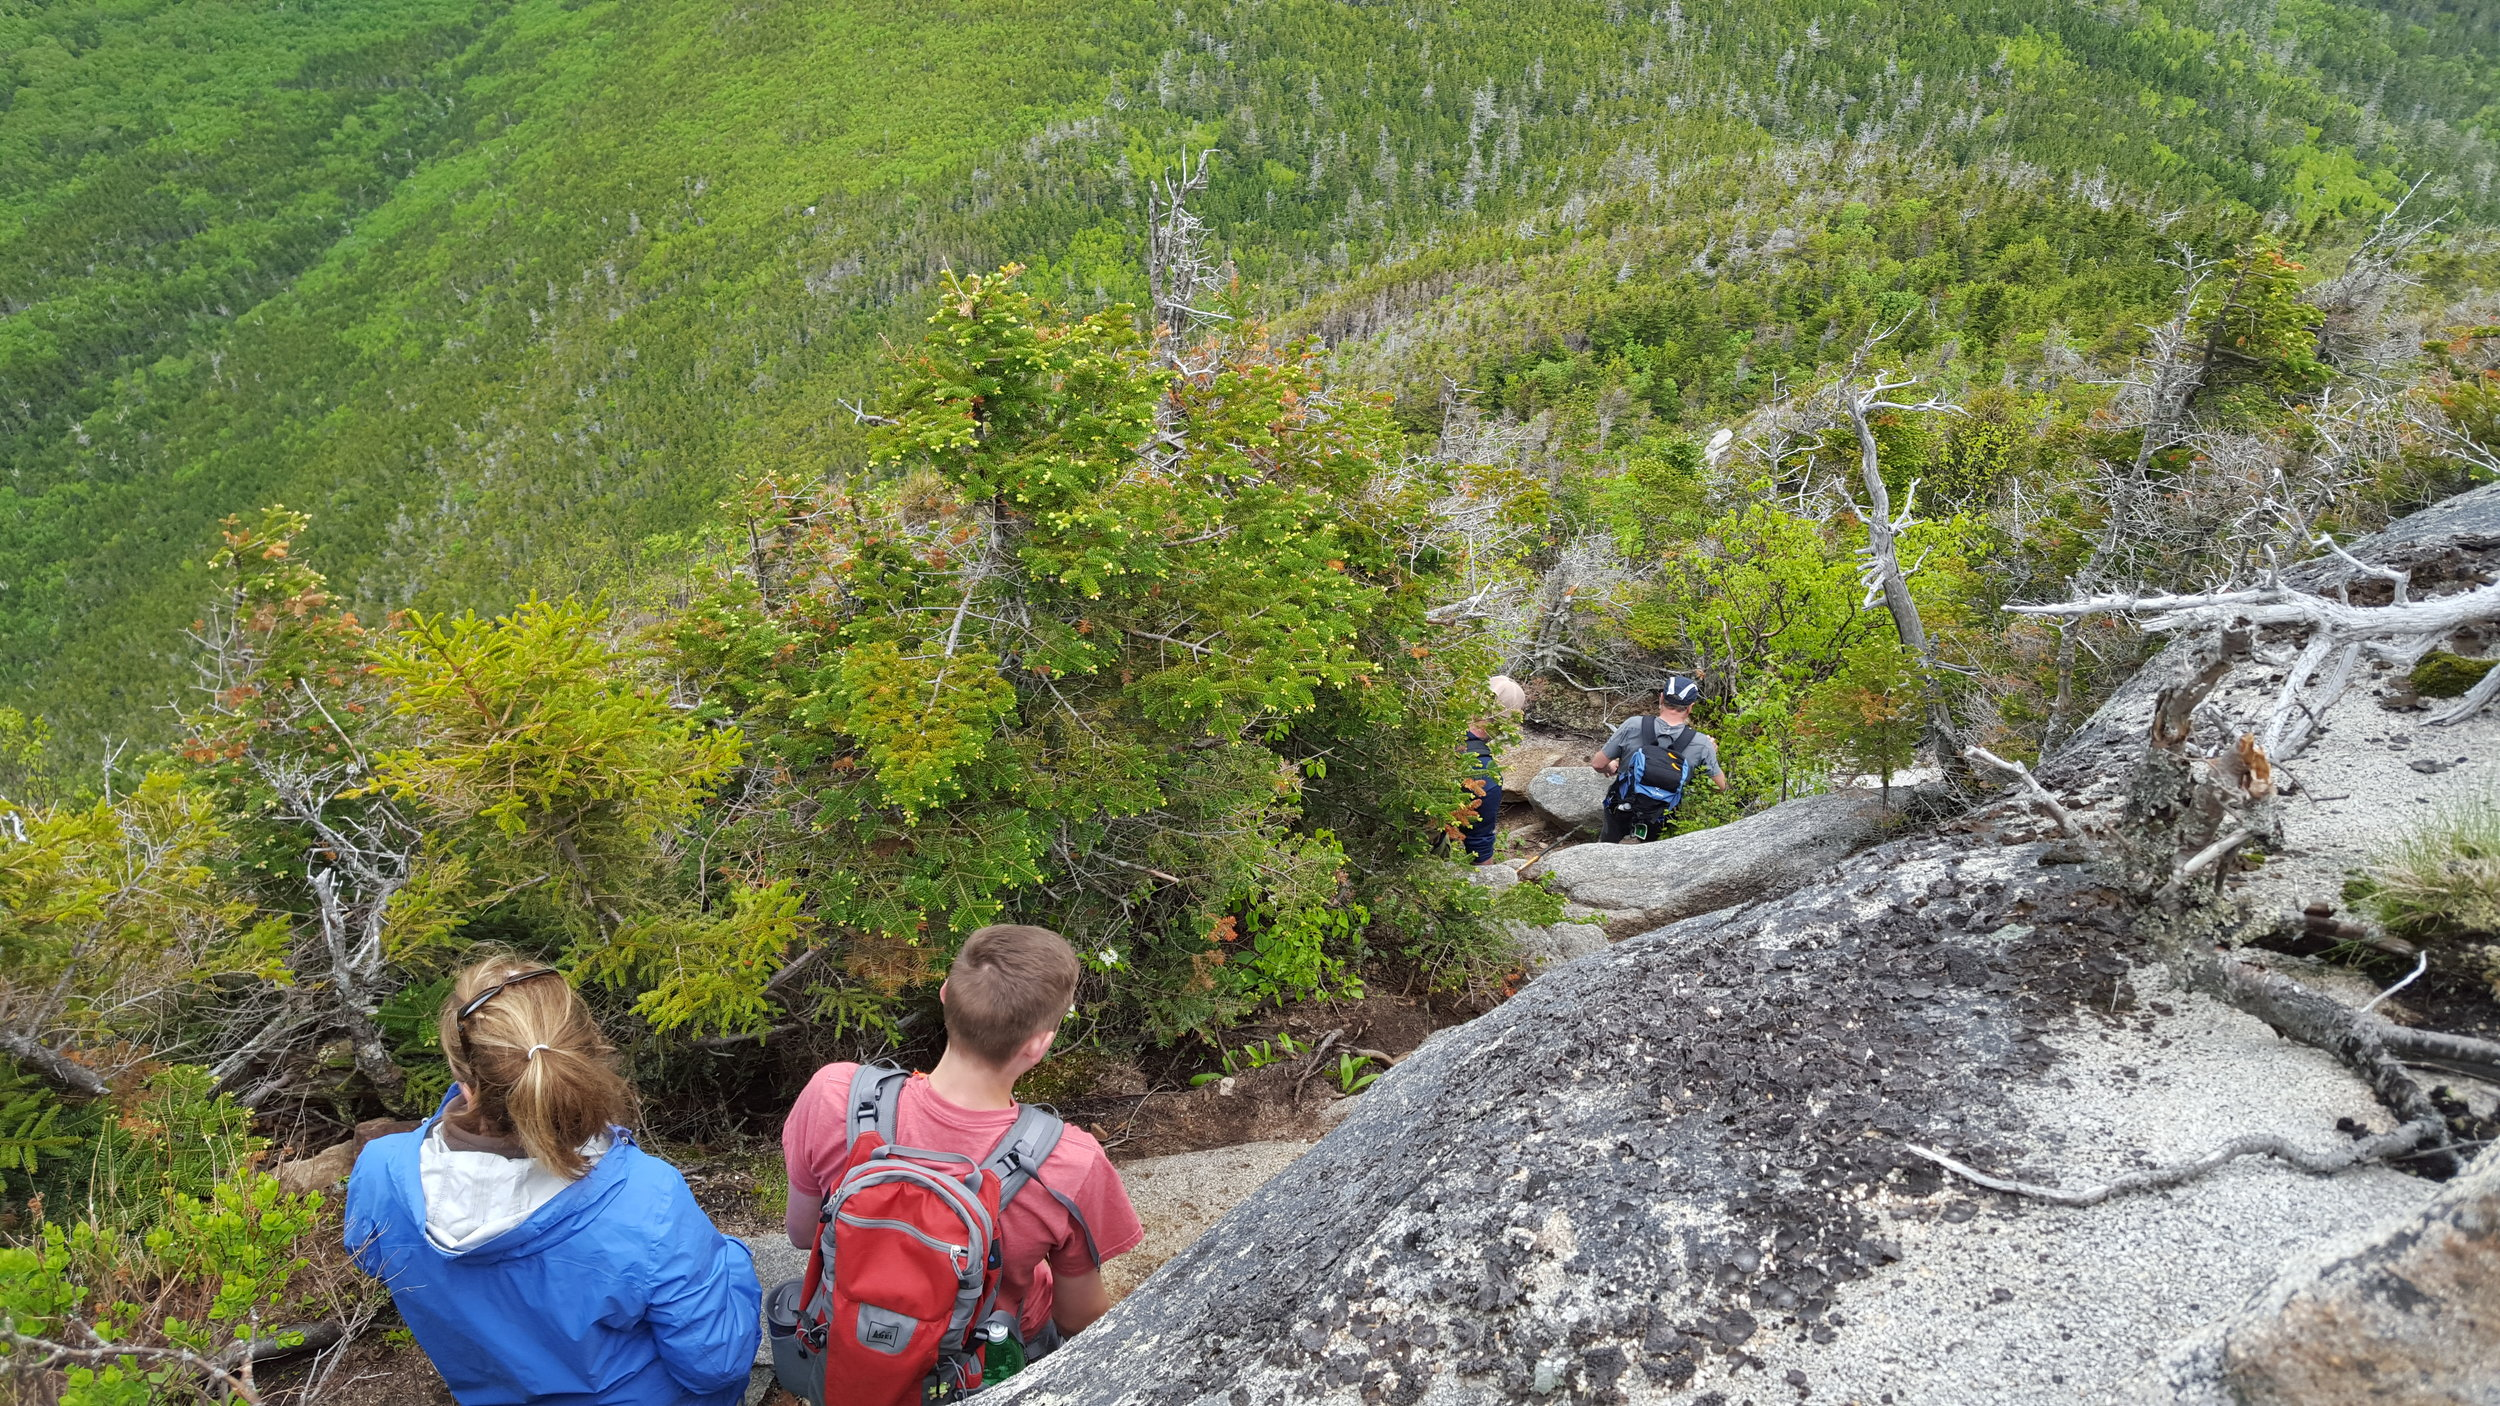 Near the top of the steep section